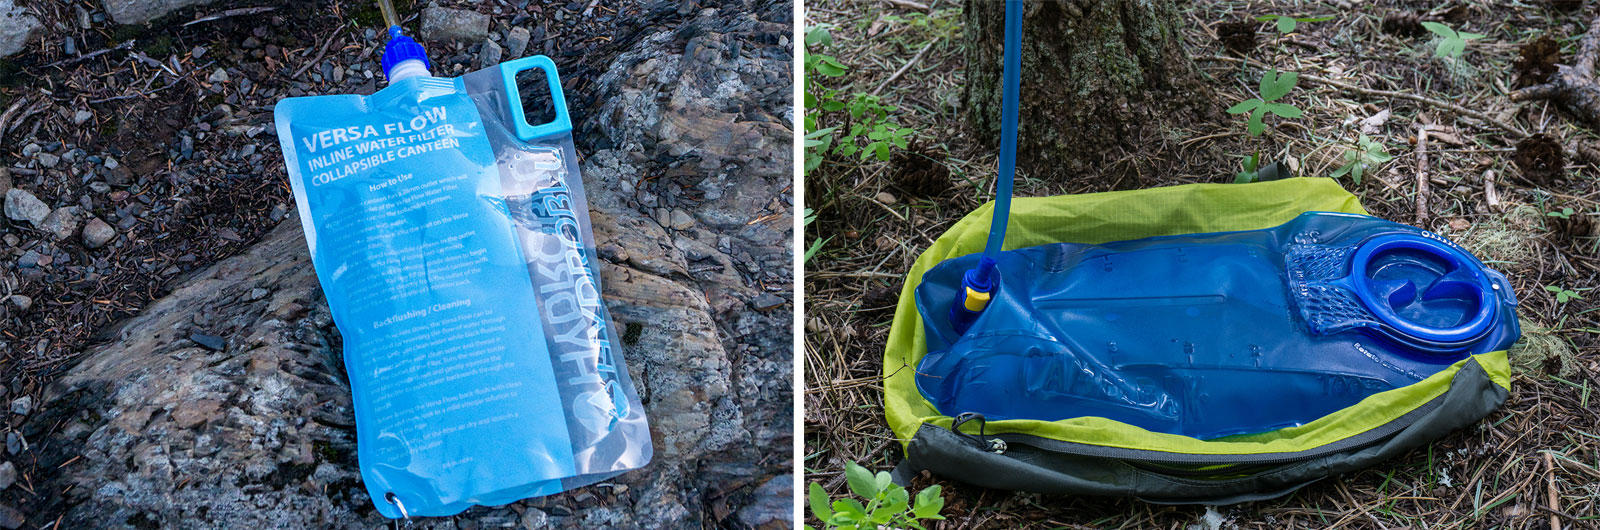 backpacking water storage containers